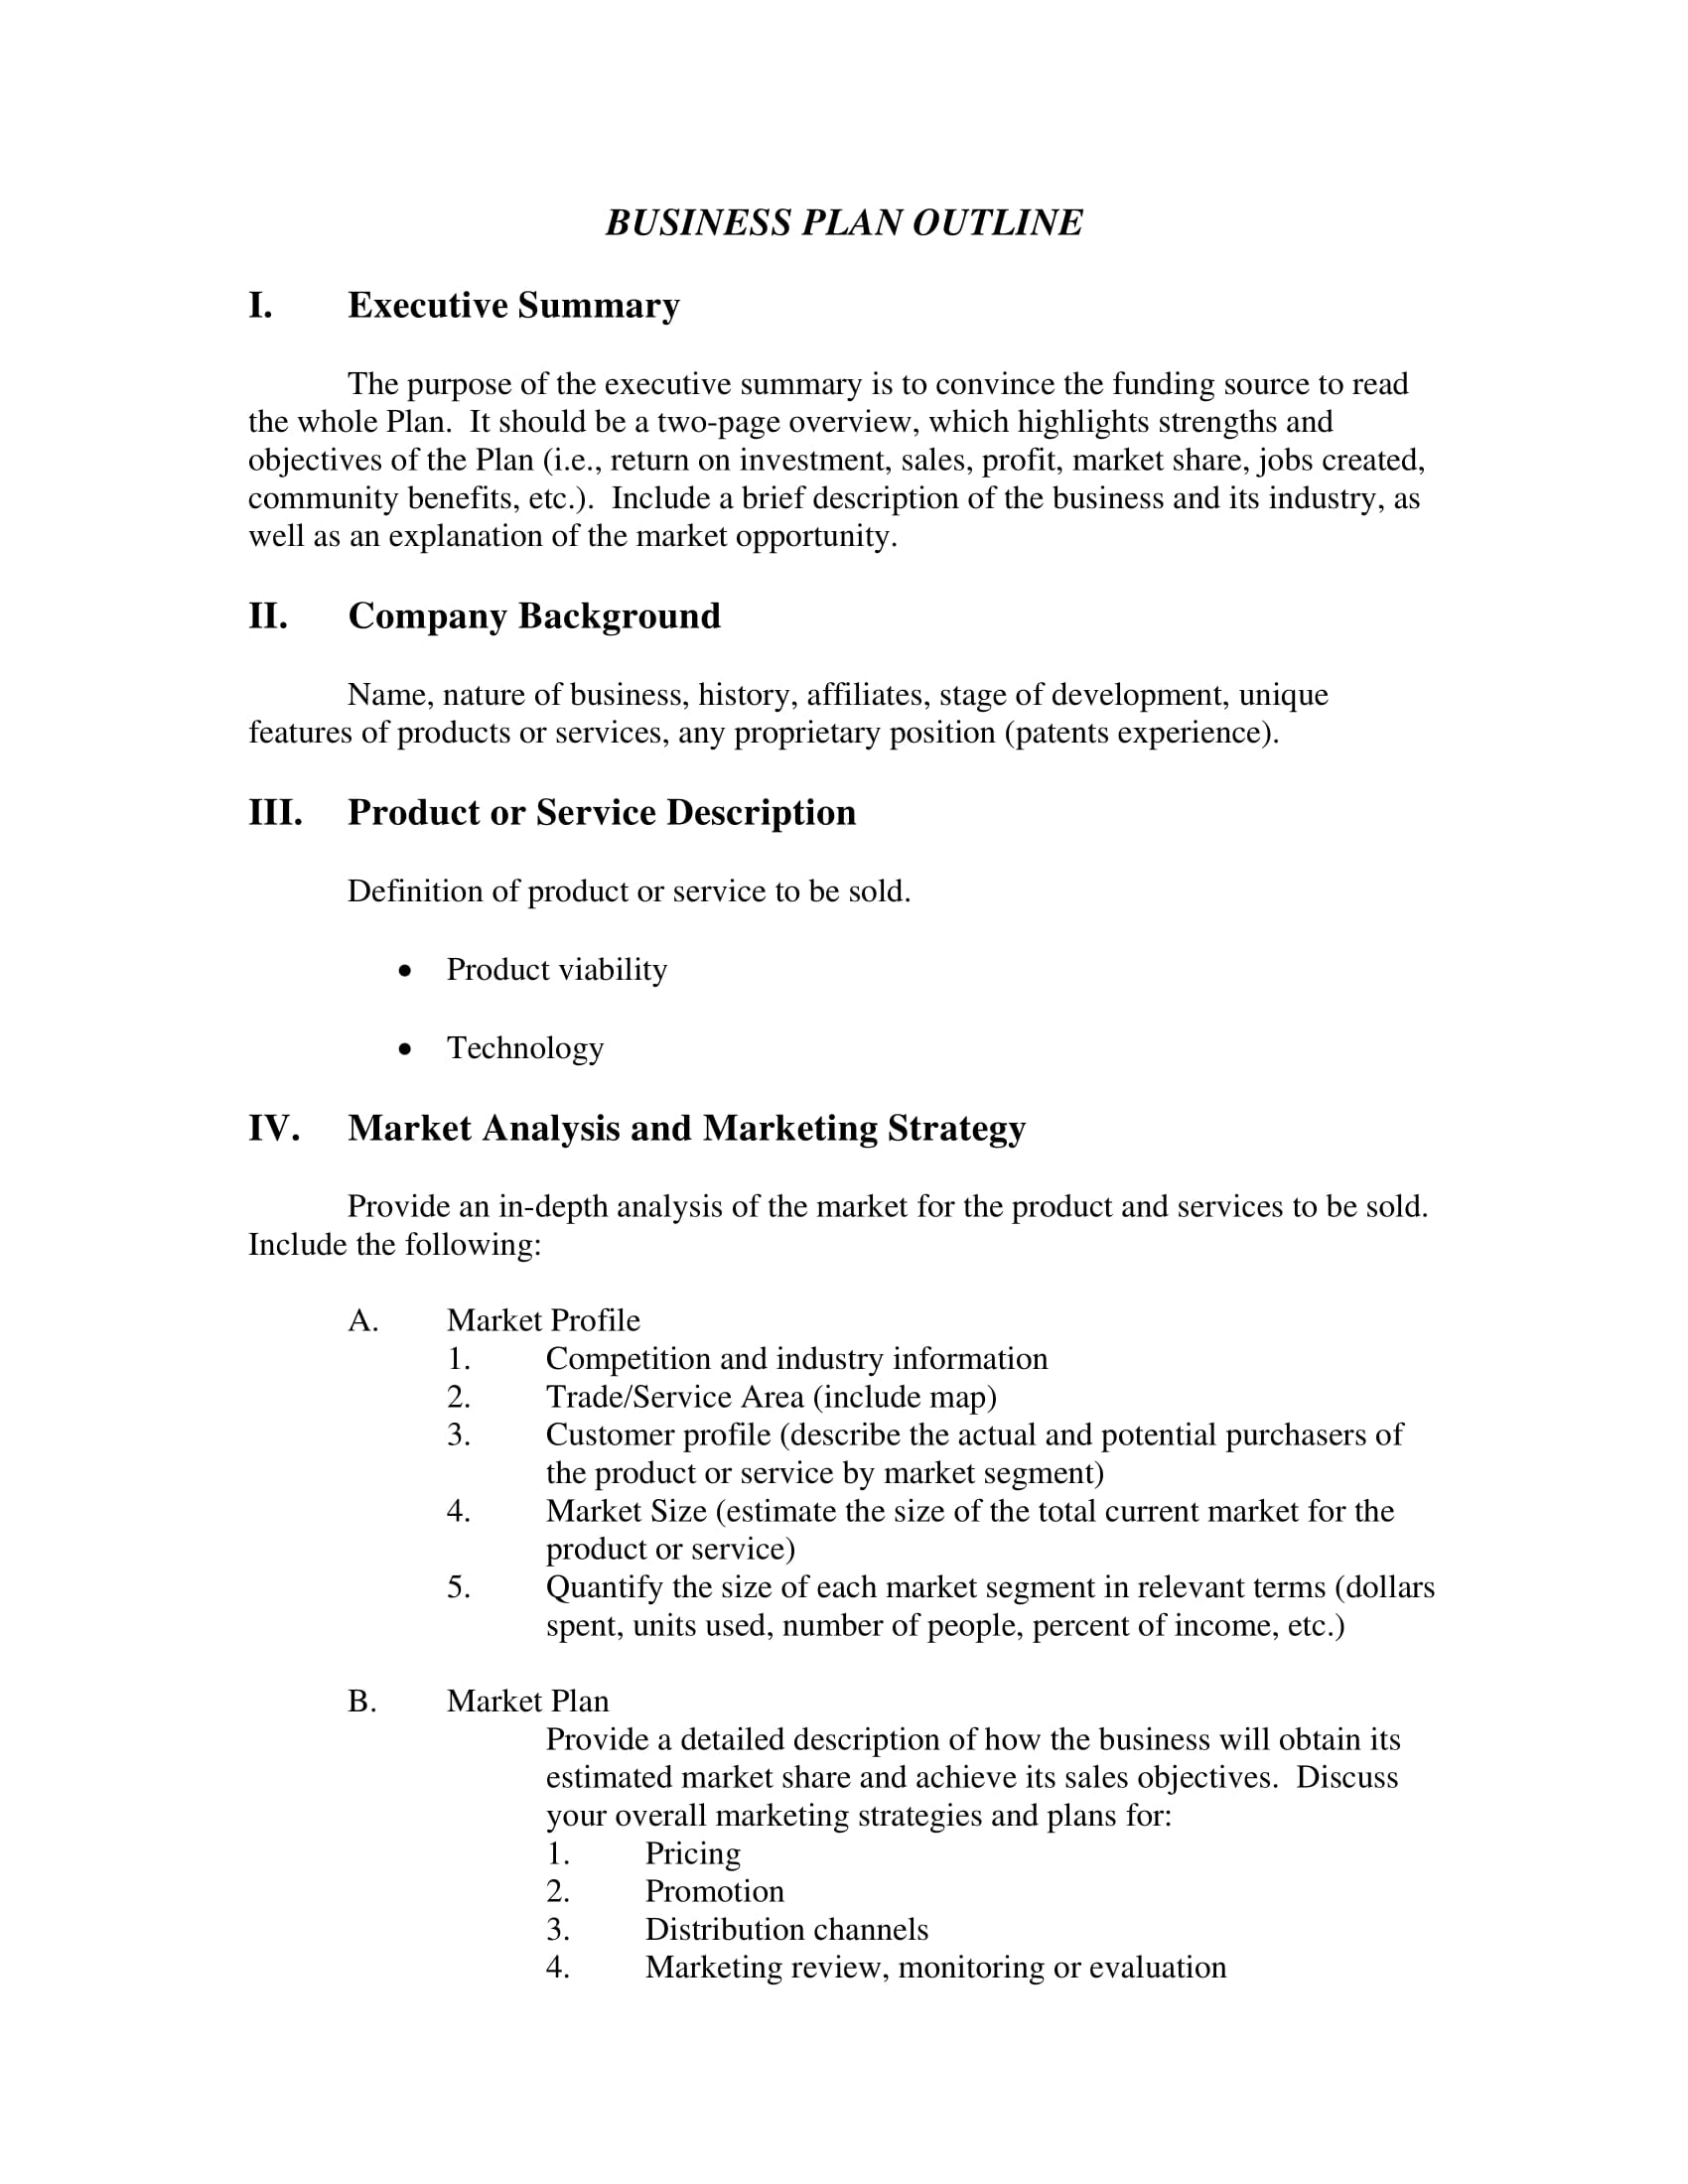 business plan outline with a thorough operational plan example 1